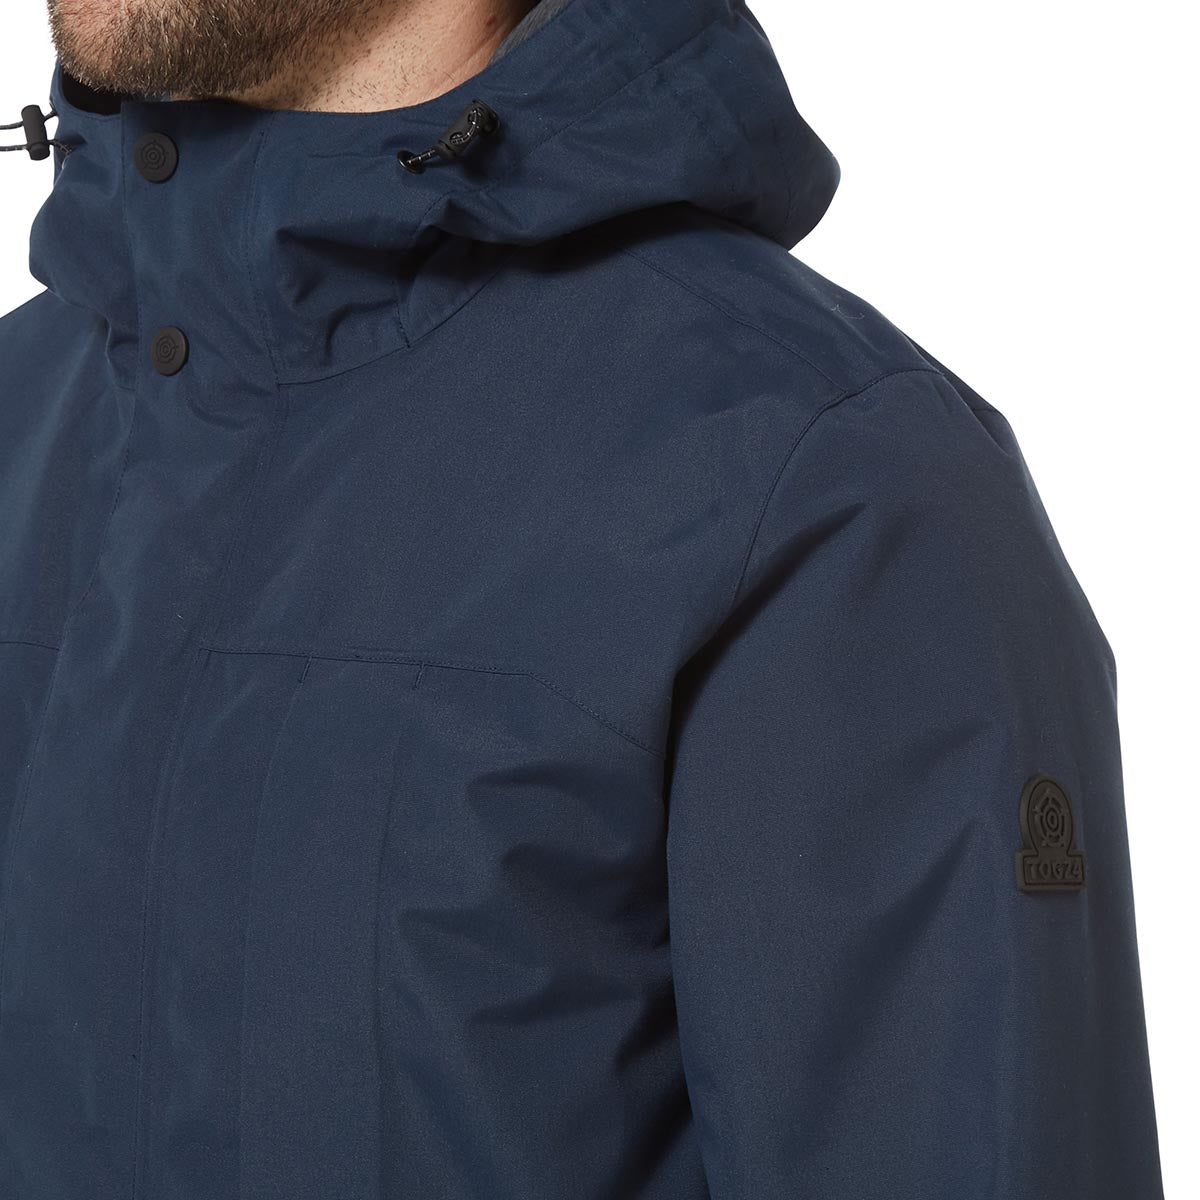 Dawson Mens Long Waterproof Jacket - Naval Blue image 4